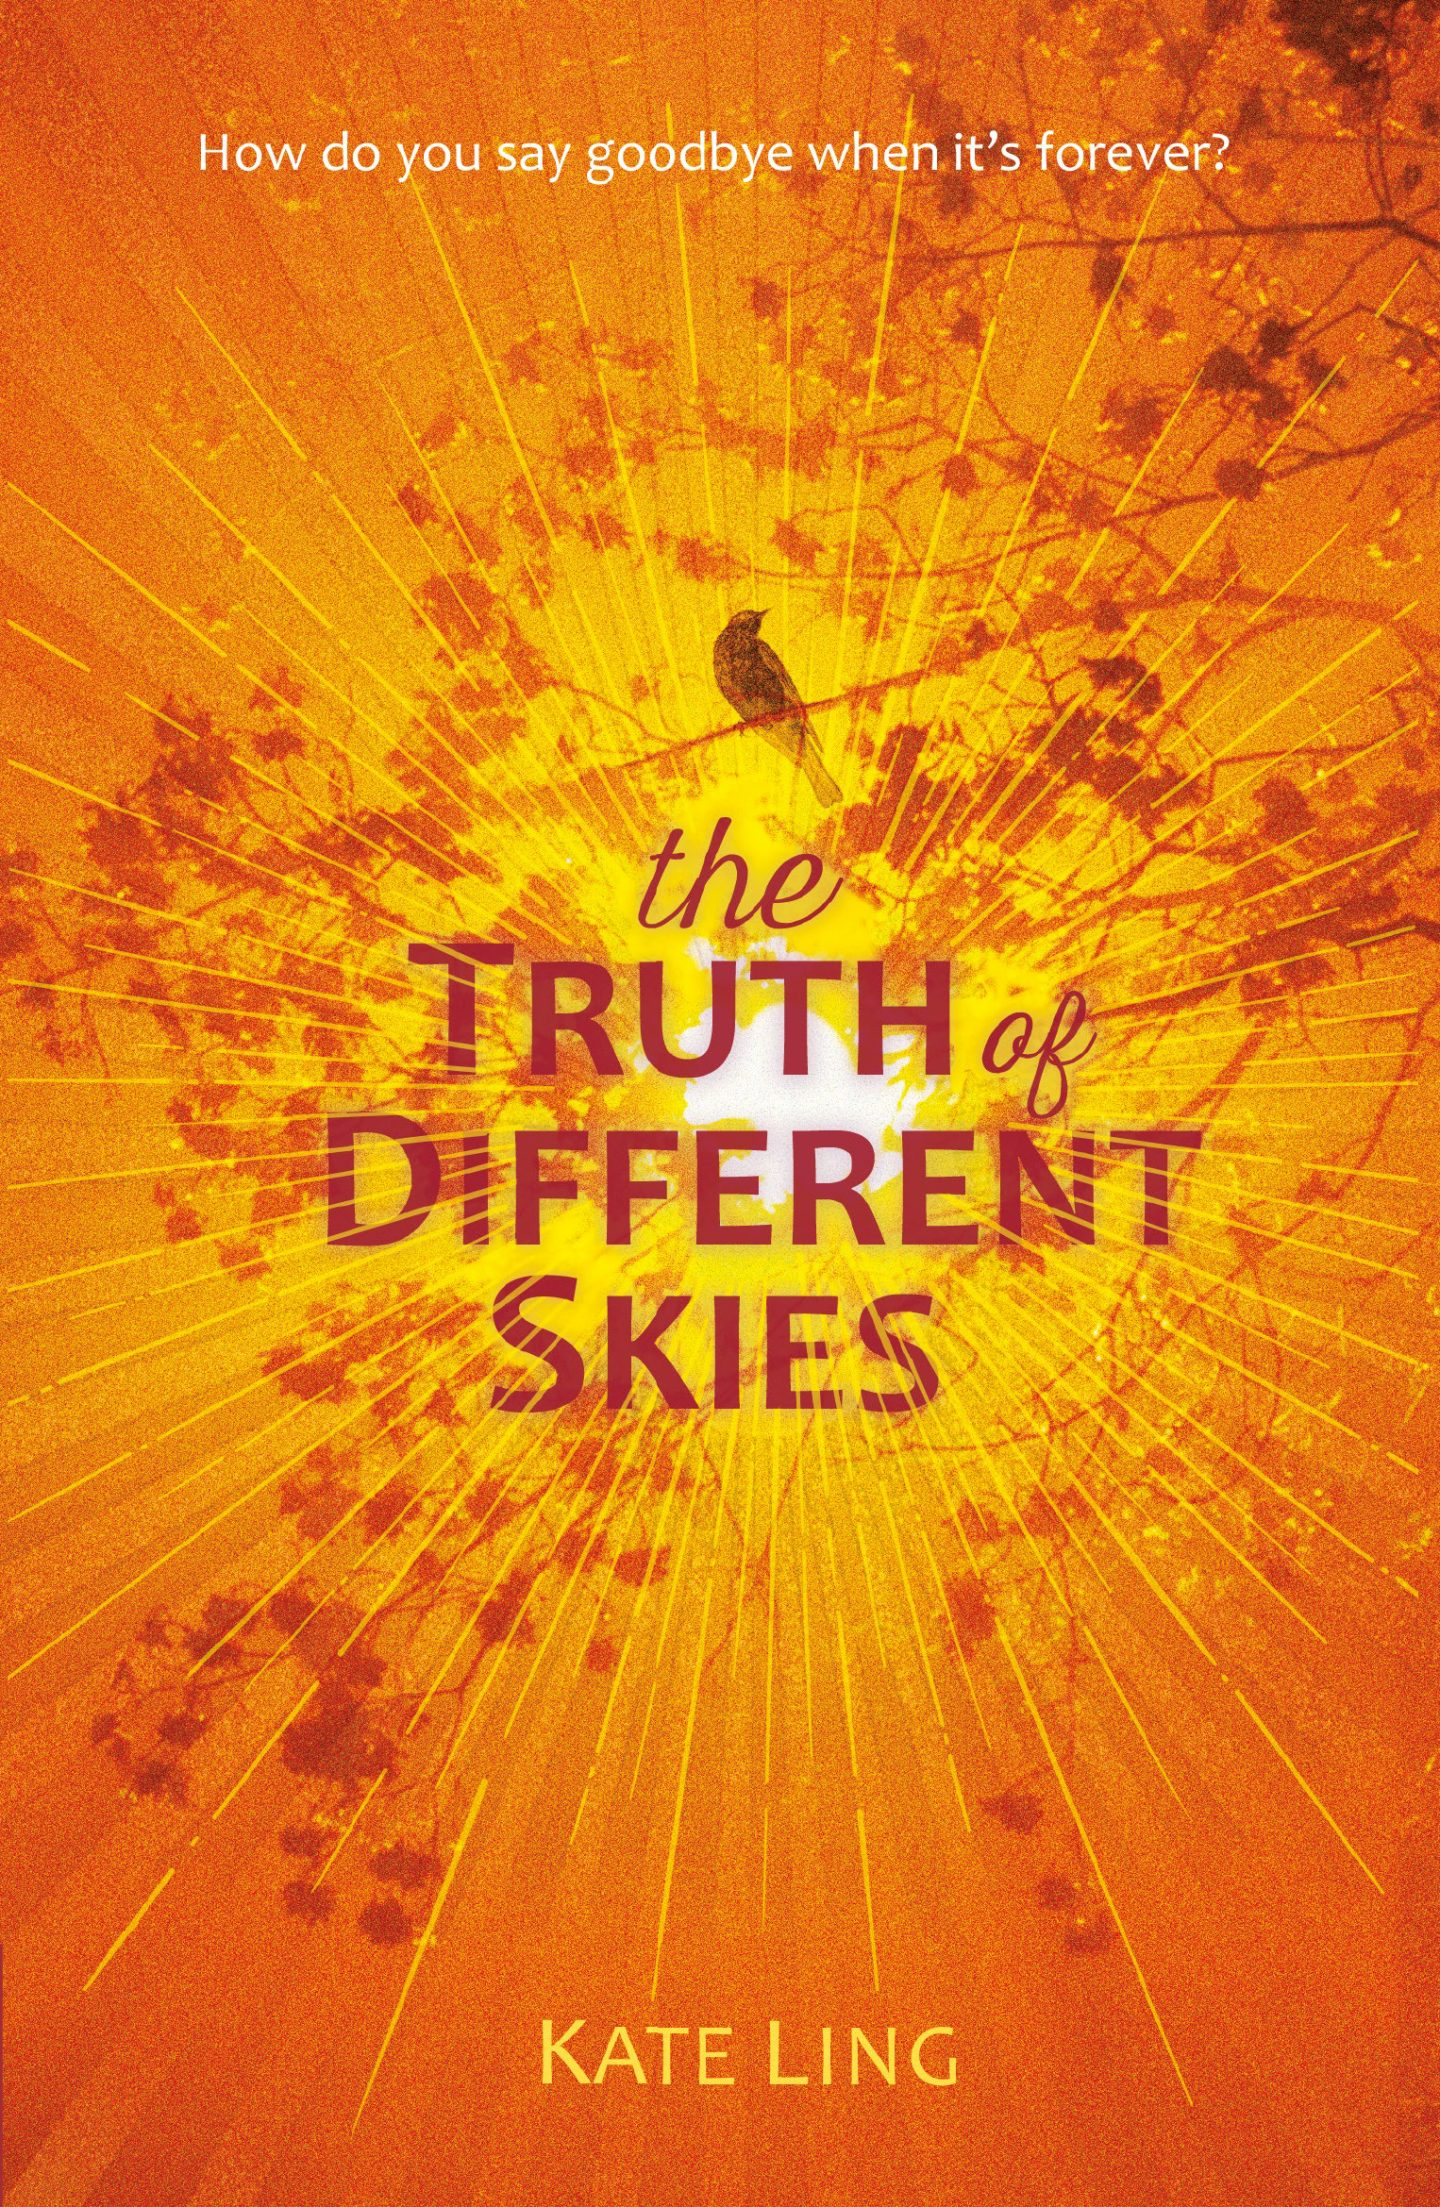 Review: The Truth of Different Skies by Kate Ling